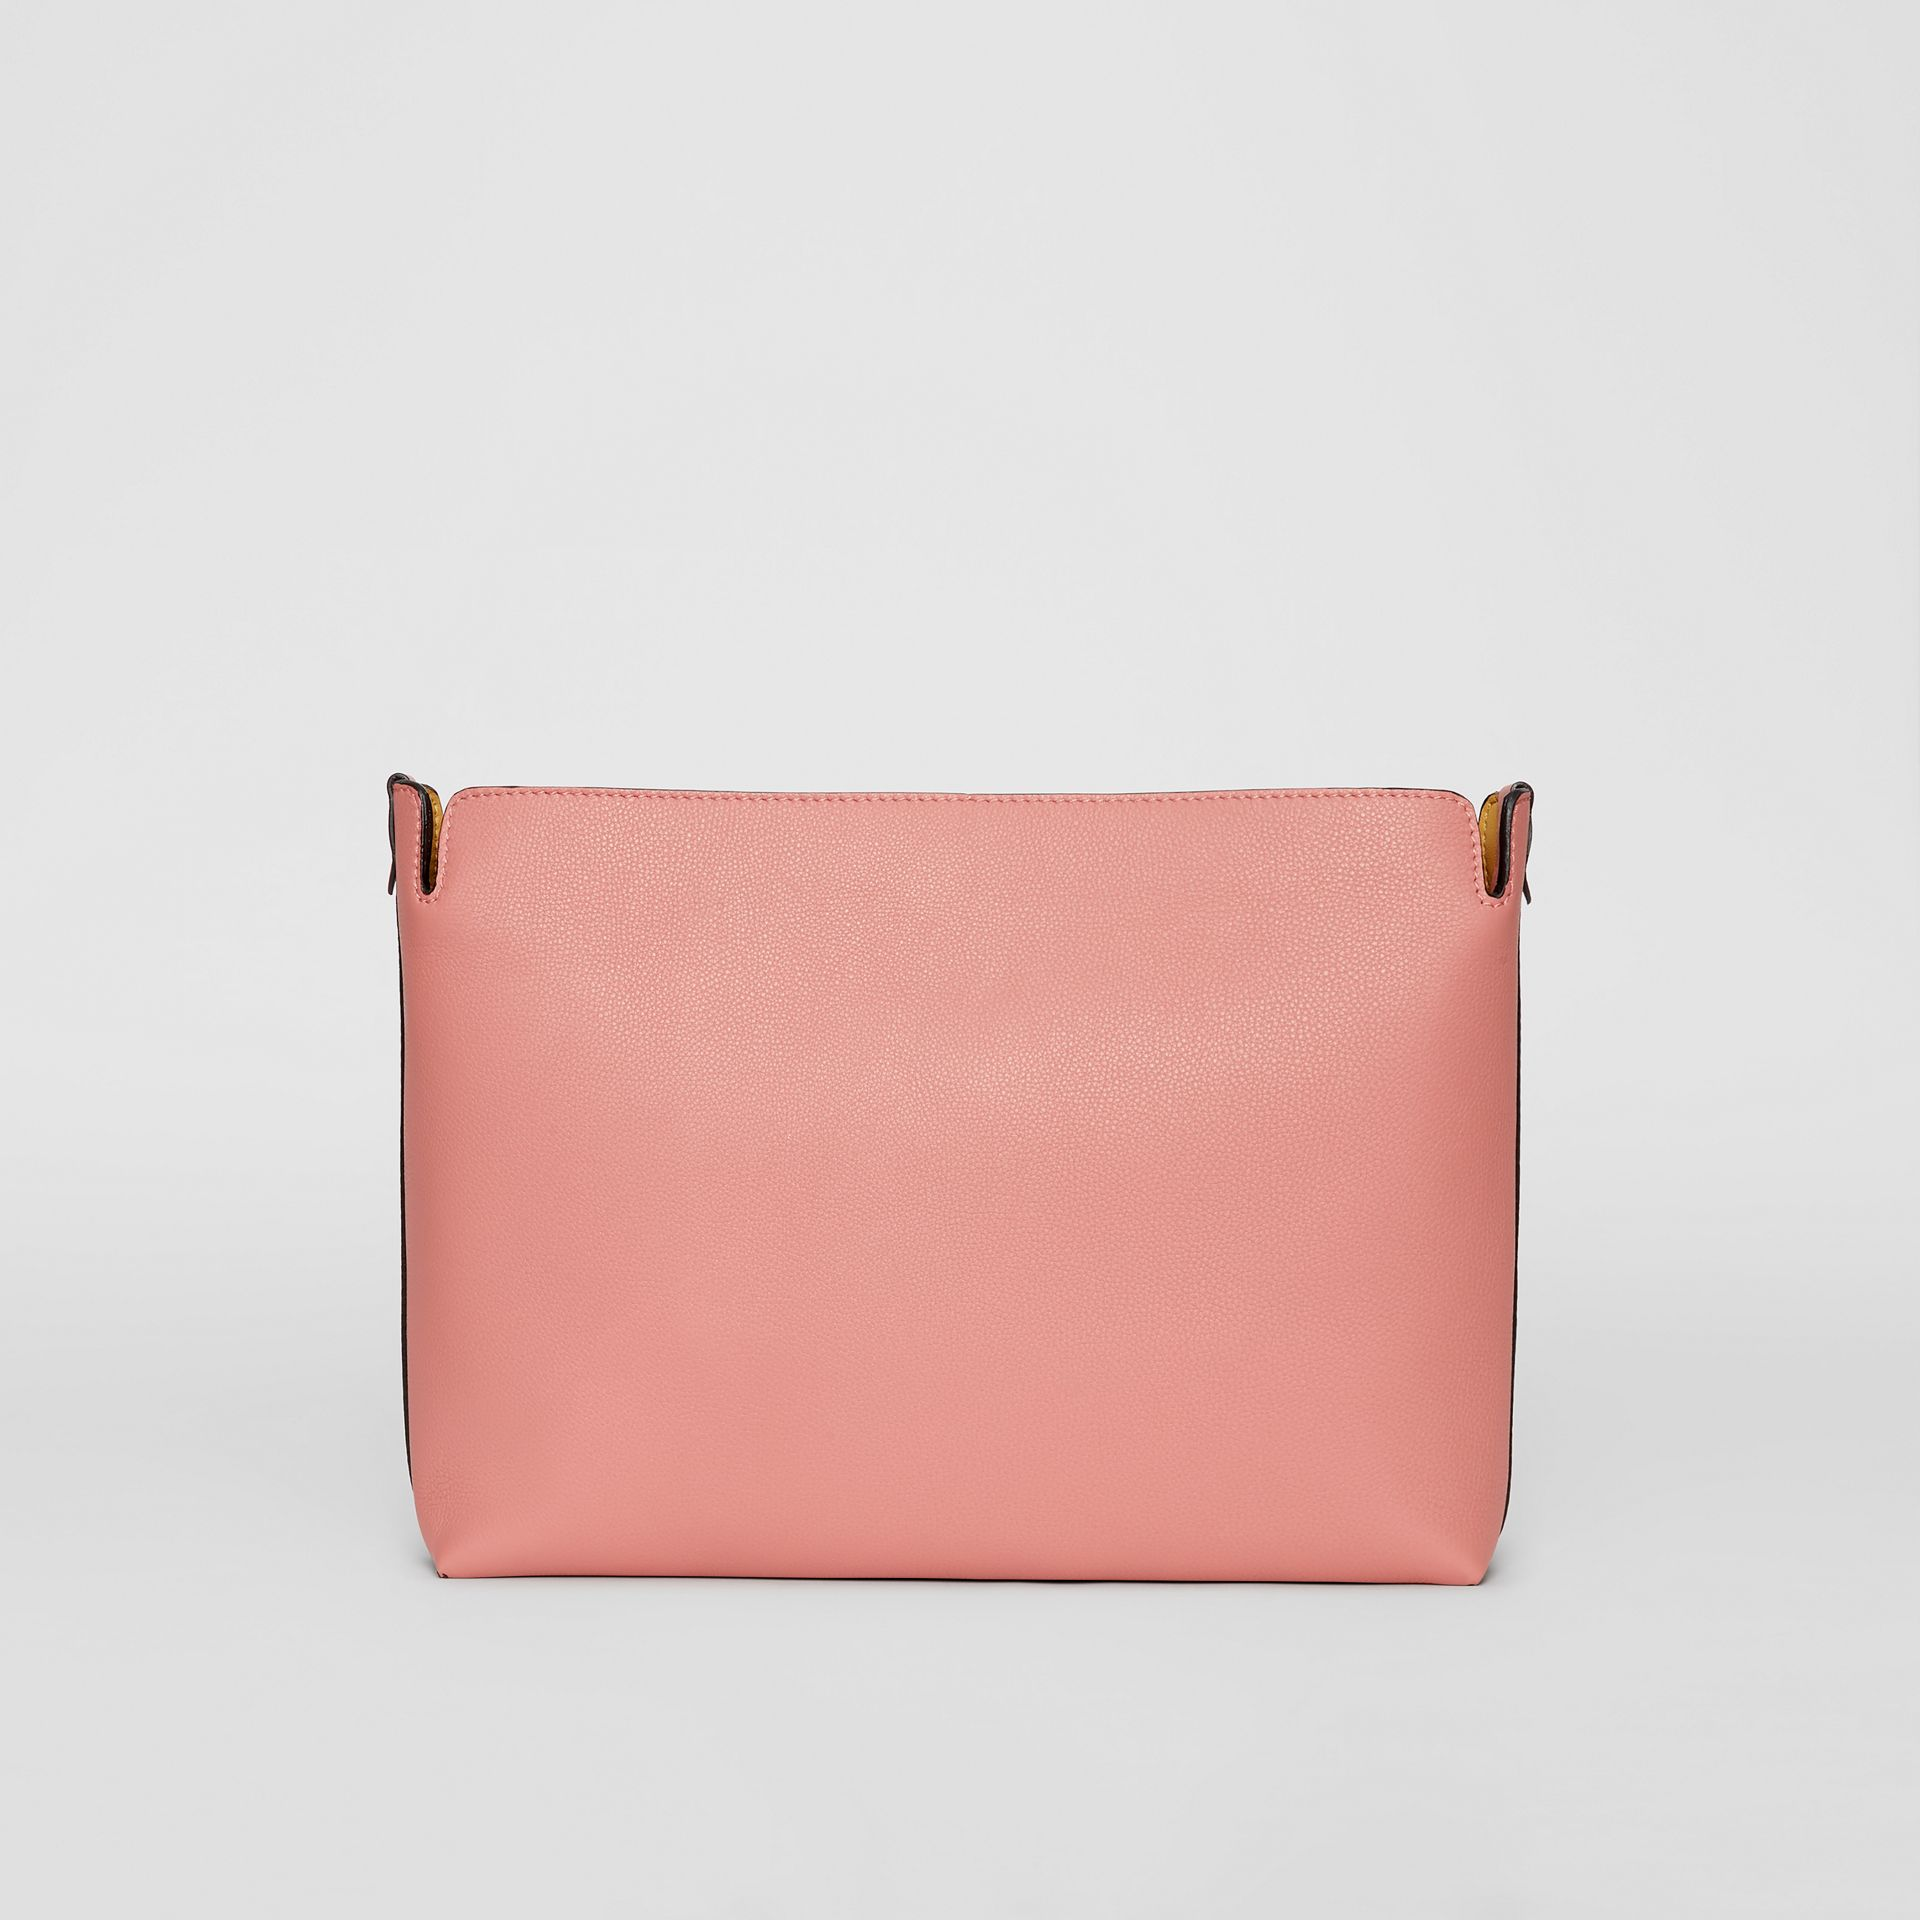 Grand clutch en cuir tricolore (Bordeaux Intense/rose Cendré) | Burberry - photo de la galerie 5